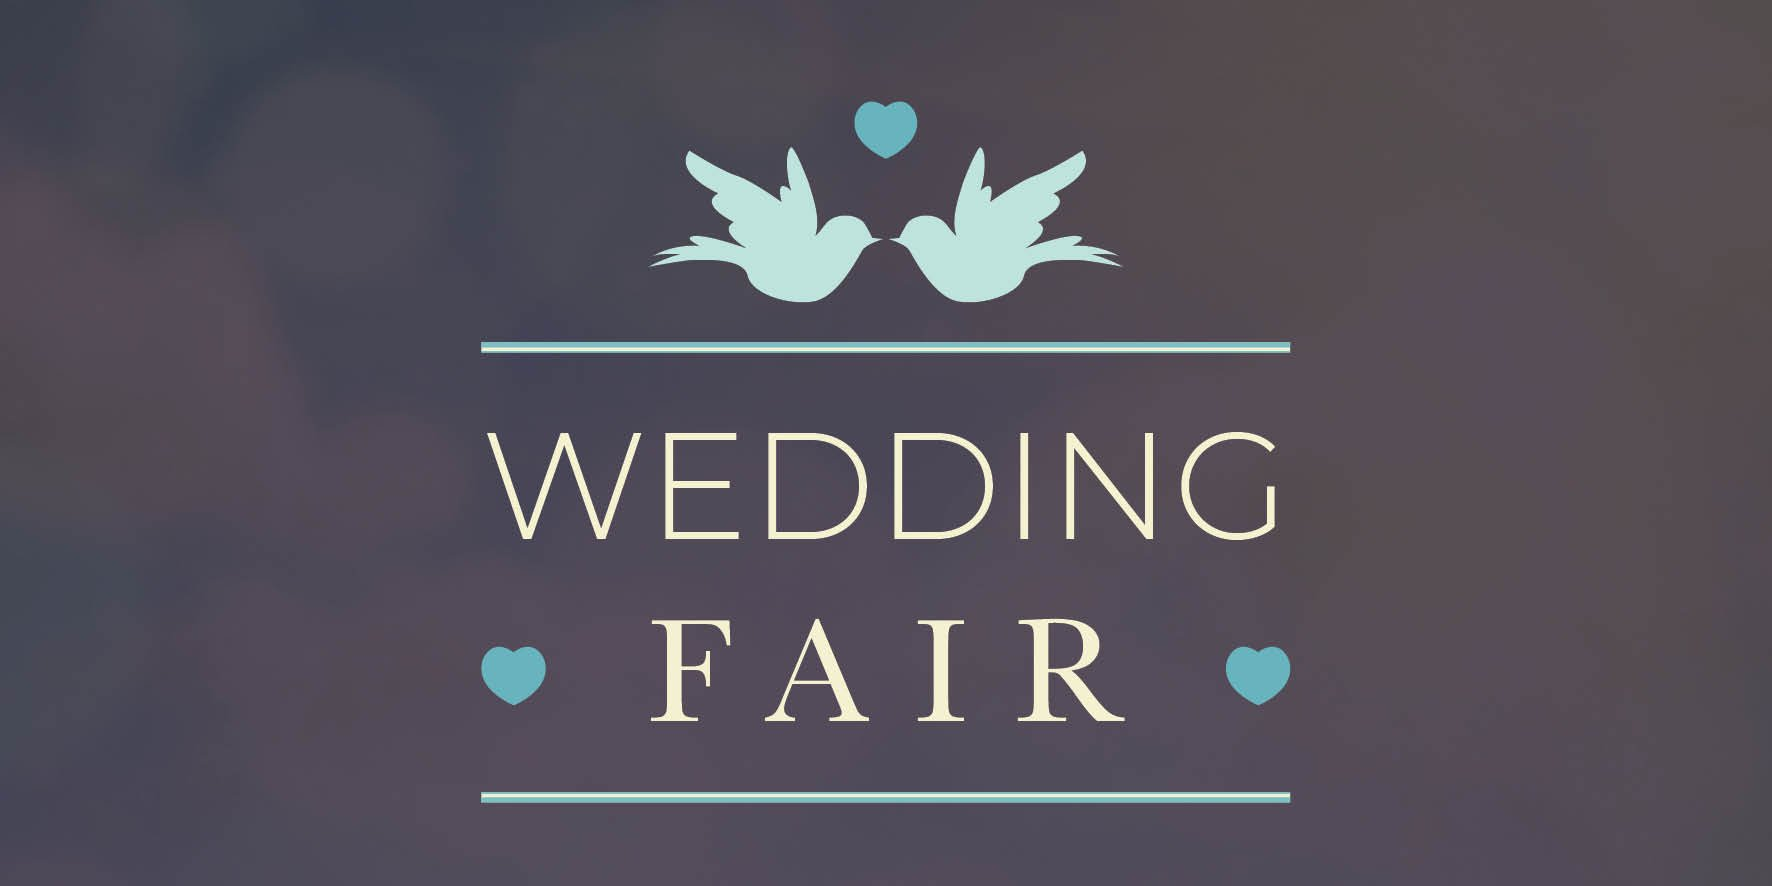 Burton Market Hall Wedding Fair – Sunday 24th February 2019